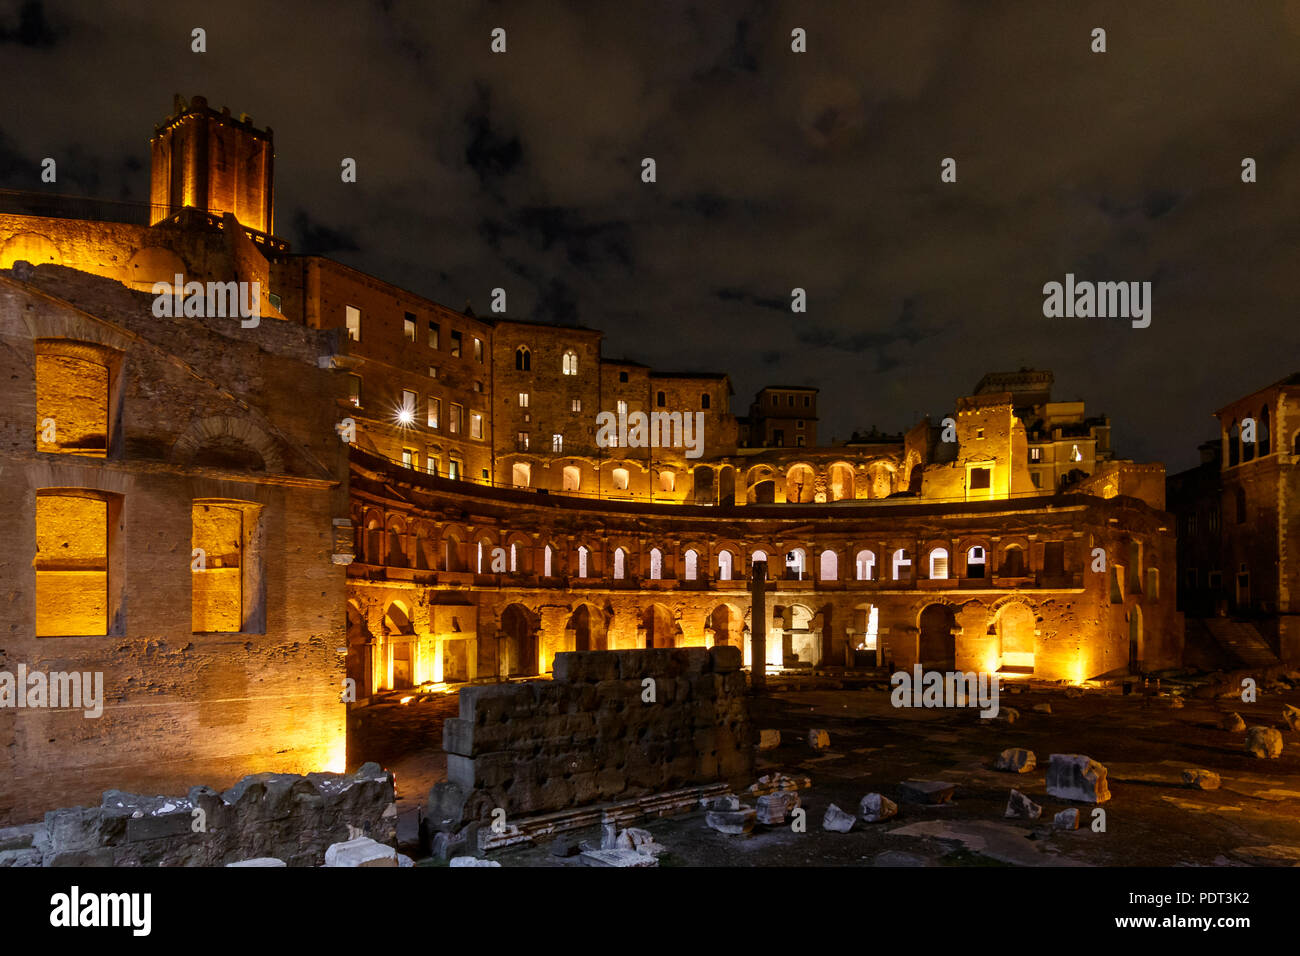 Night scene of the Trajan's market ruins at the Trajan's Forum, Rome, Italy. - Stock Image